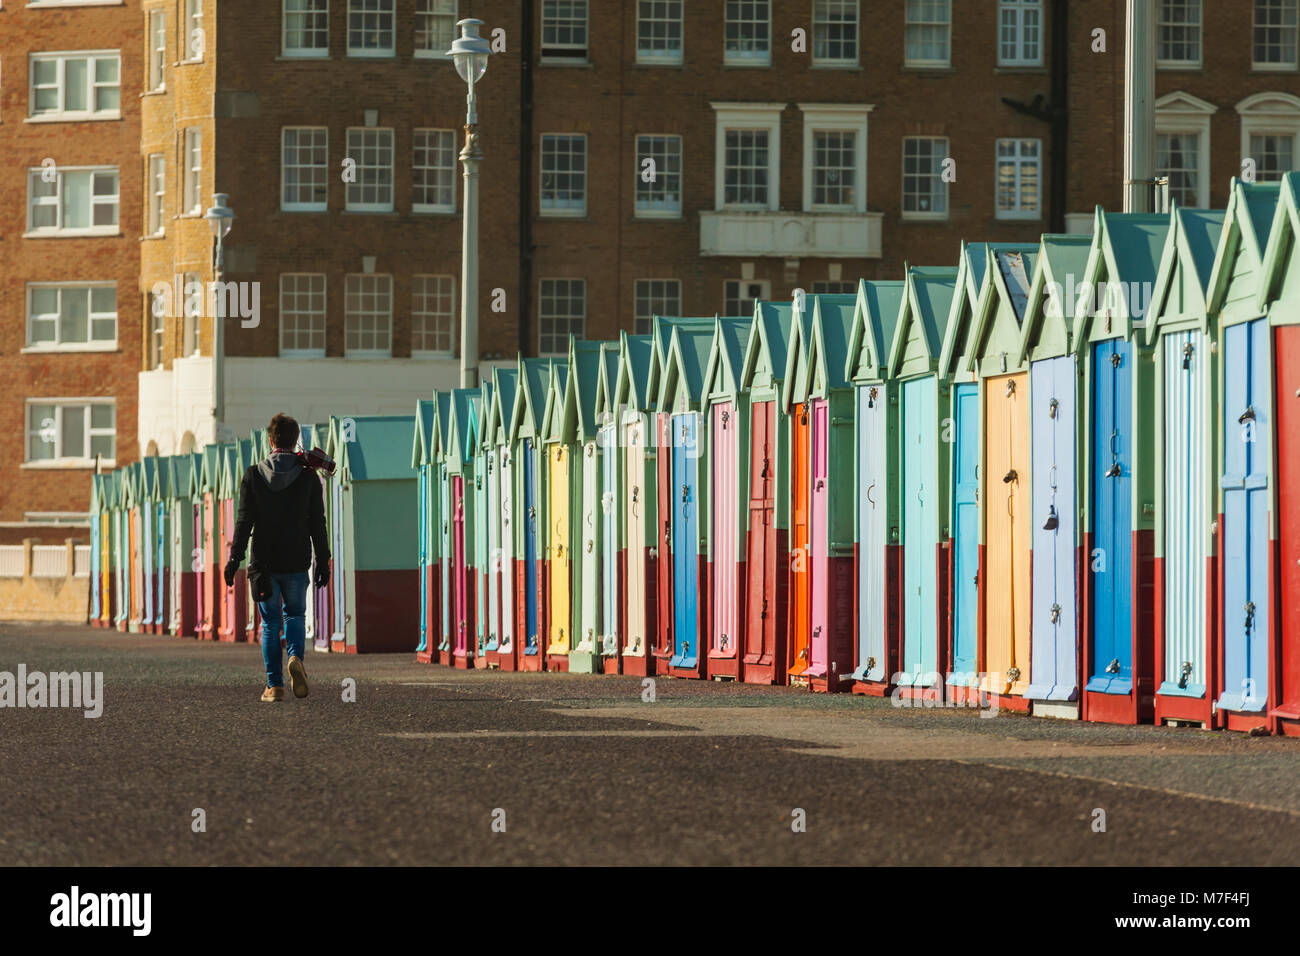 Colourful beach huts on Brighton seafront, East Sussex, England. - Stock Image